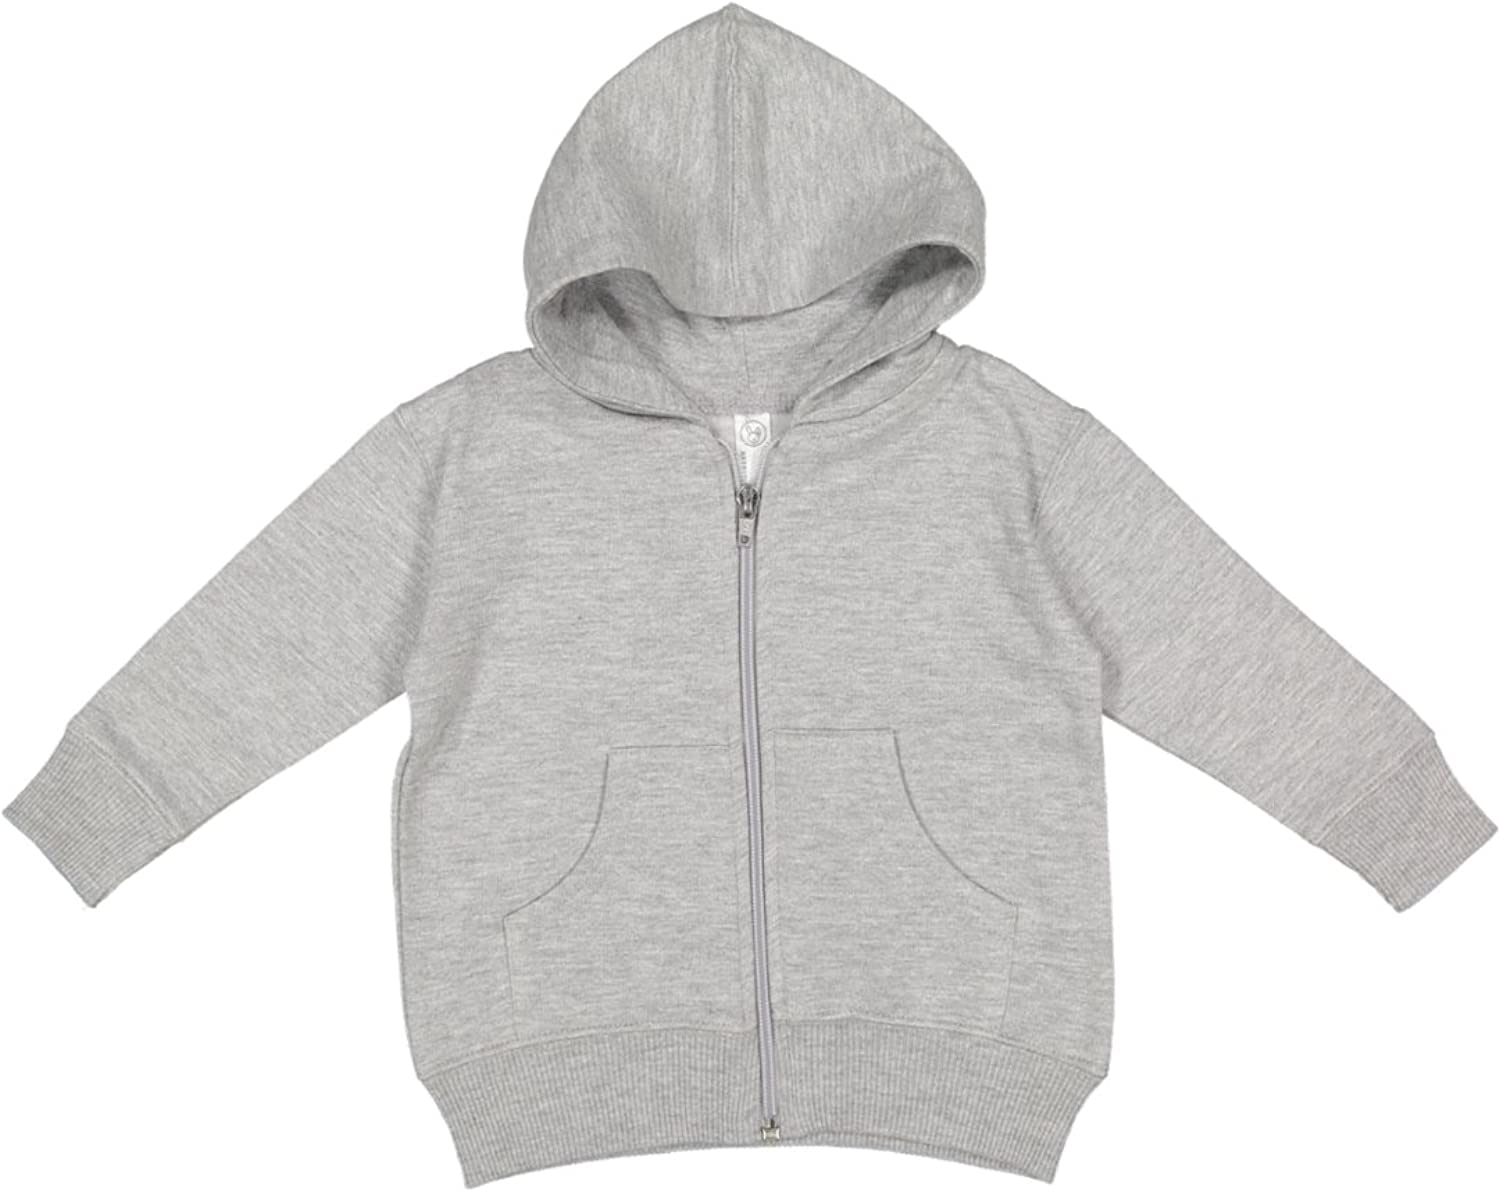 Infant Fleece Hooded Zip Front Sweatshirt with Pocket by Rabbit Skins